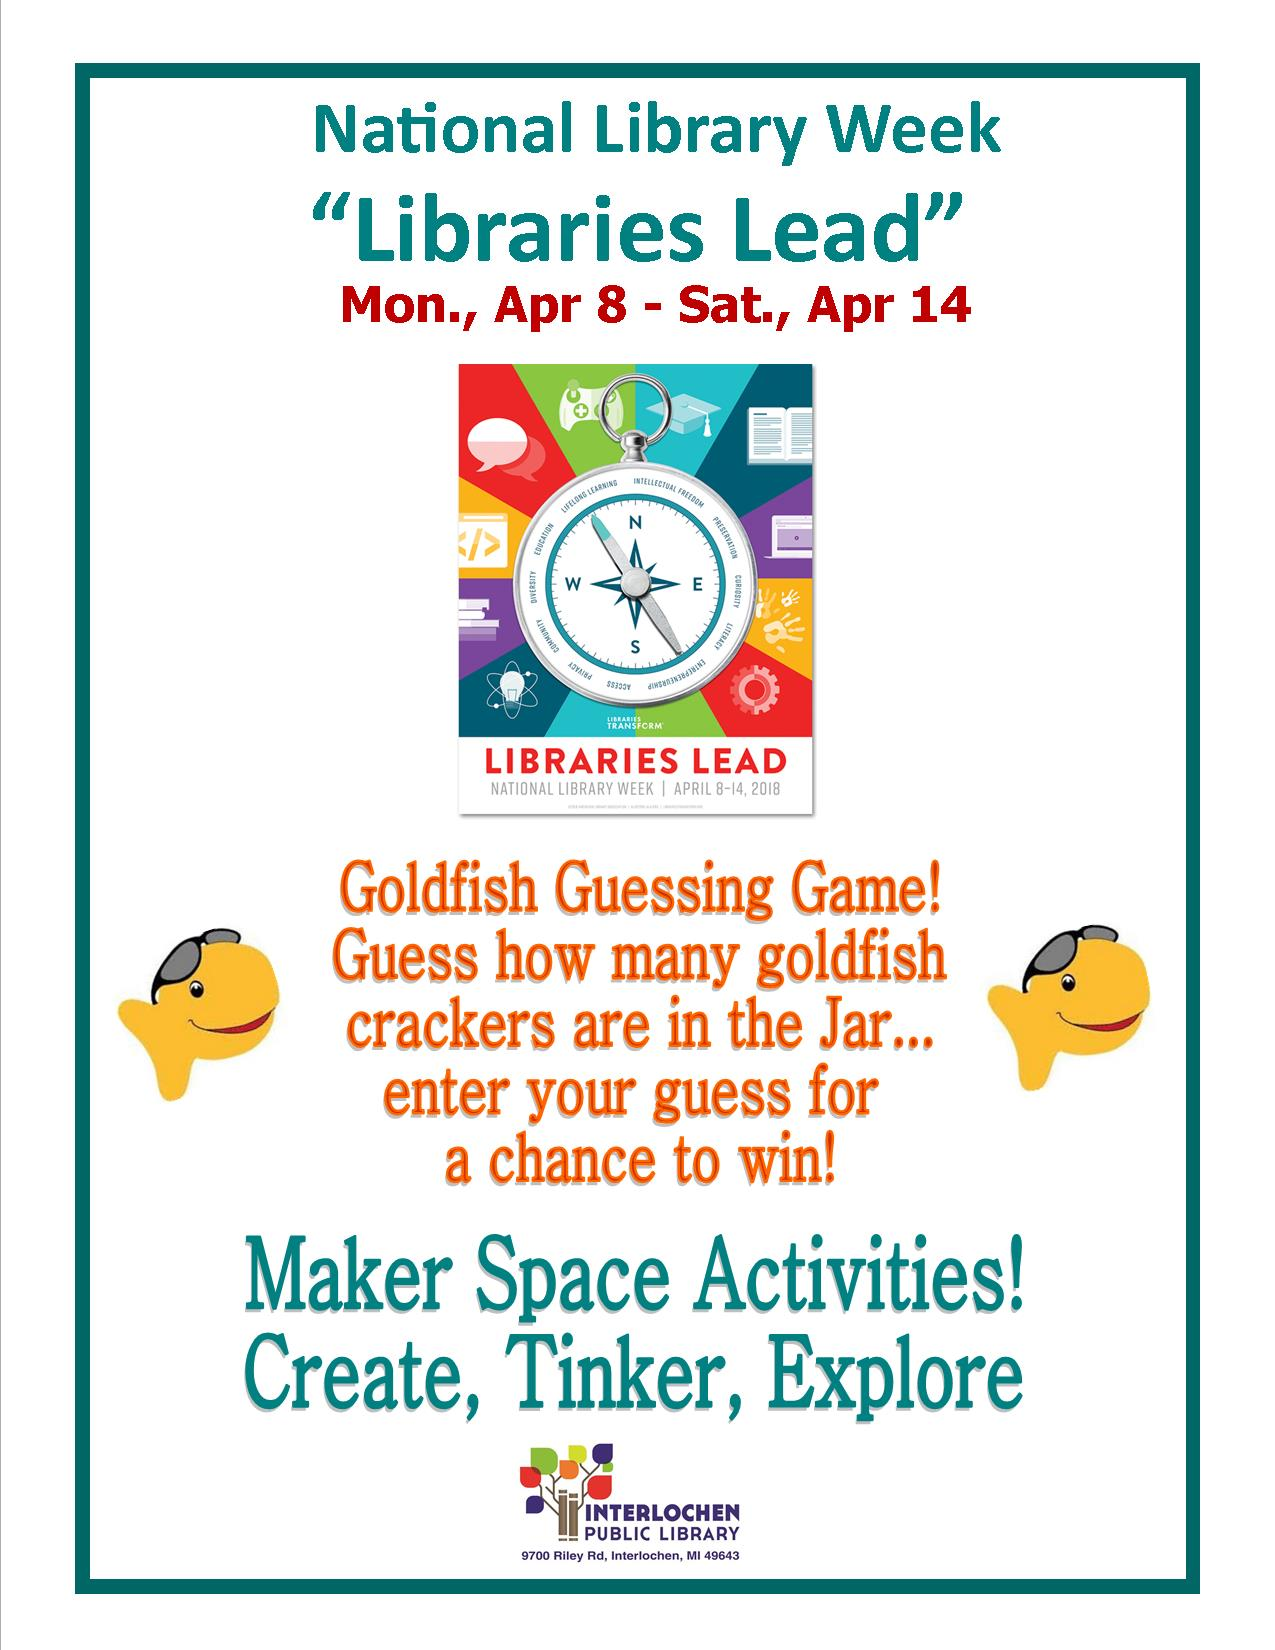 Guessing Game and Maker Space Activities during National Library